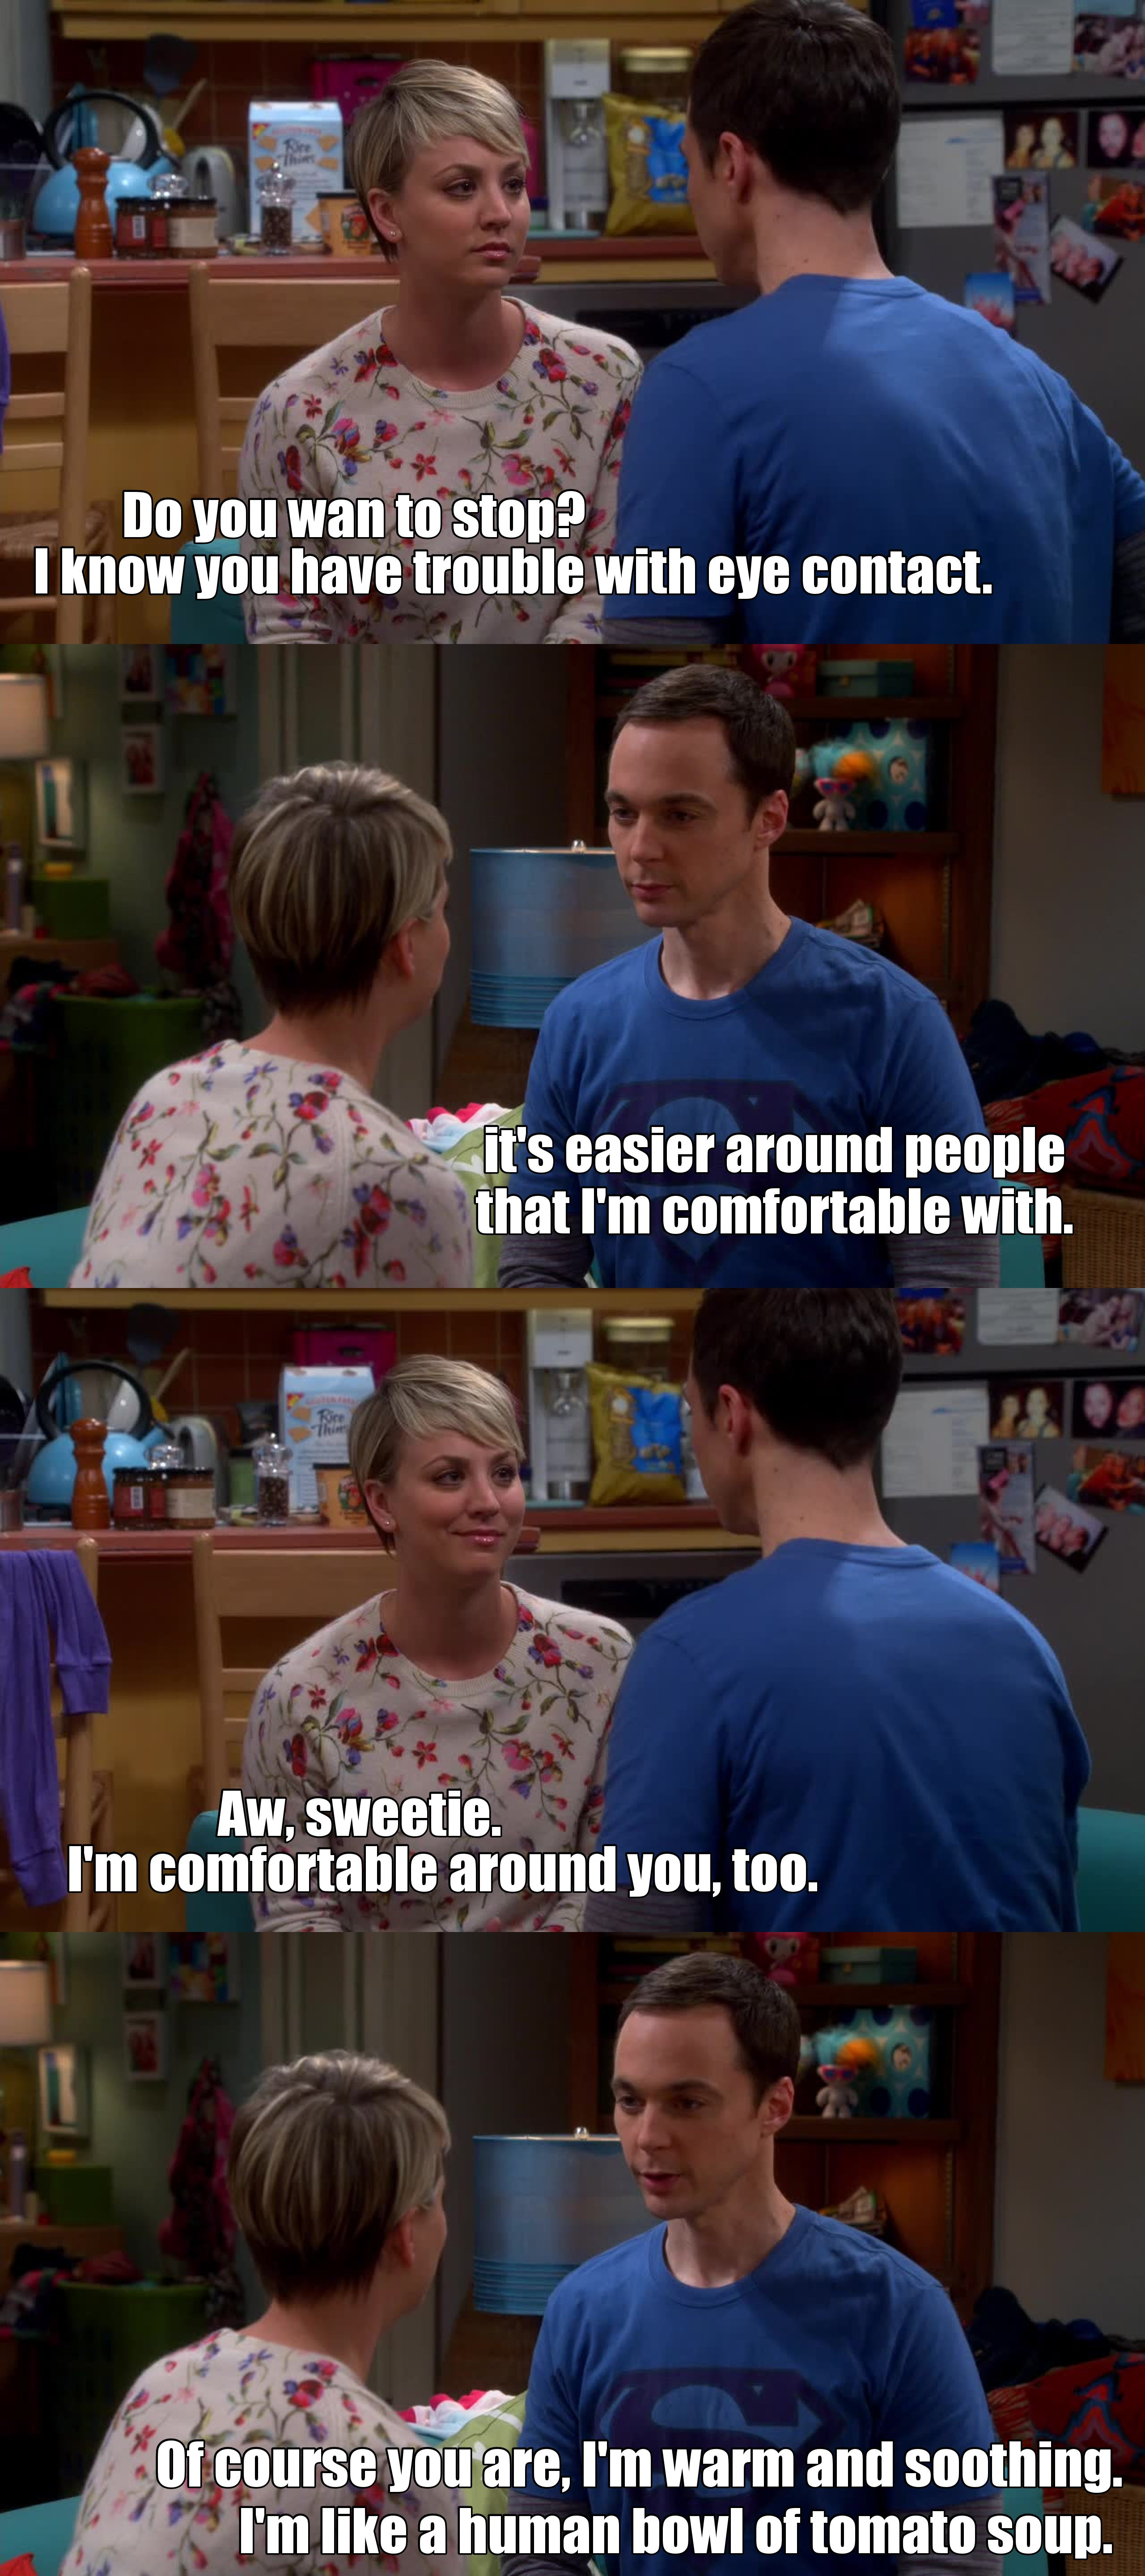 I love Penny/Sheldon friendship since the beginning and it's still one of the best things of this show! :)